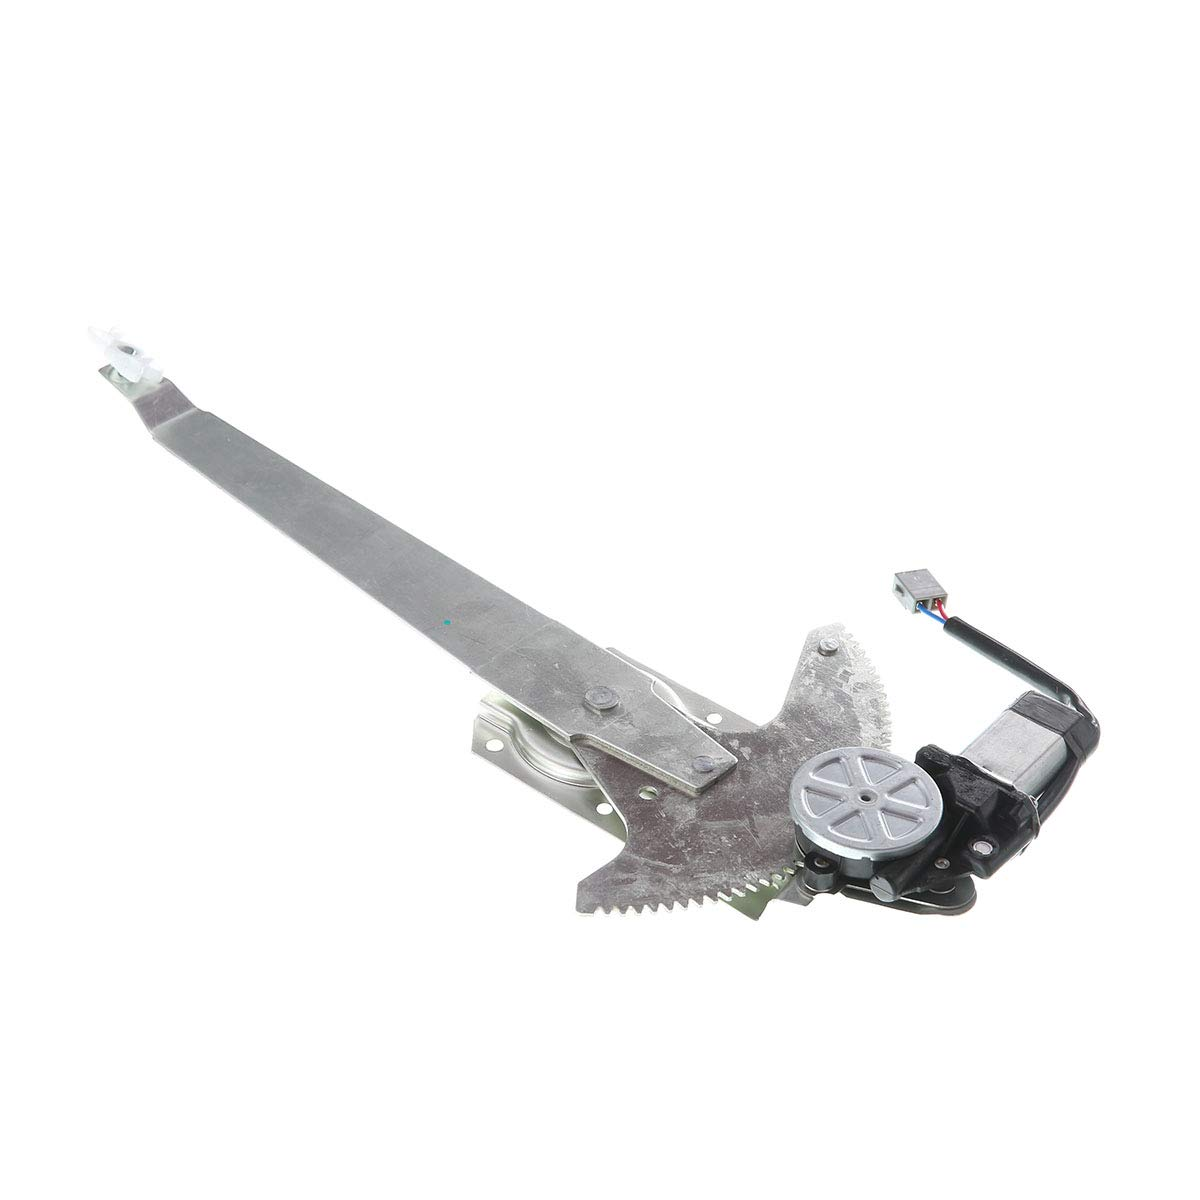 A-Premium Power Electric Window Regulator with Motor for Ford Bronco F Super Duty F-100 F-150 F-250 F-250 HD F-350 F53 F59 1980-1997 Front Driver Side